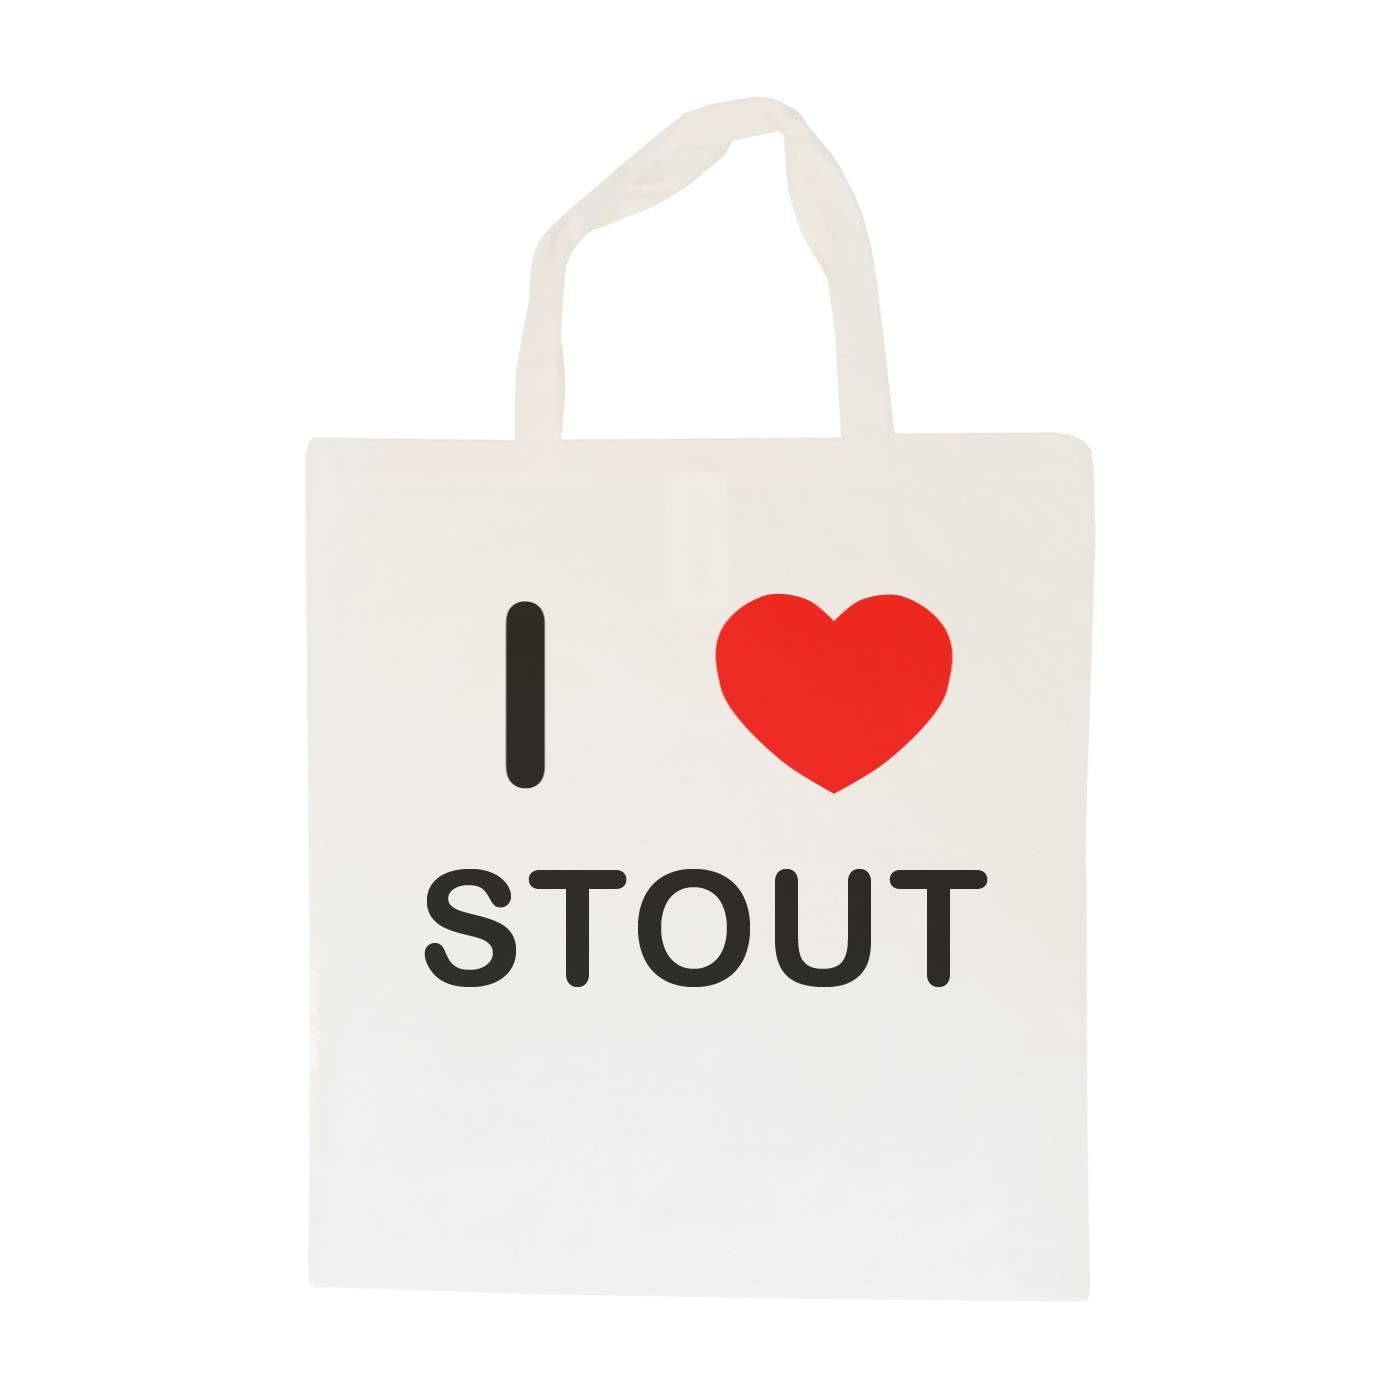 I Love Stout - Cotton Bag | Size choice Tote, Shopper or Sling